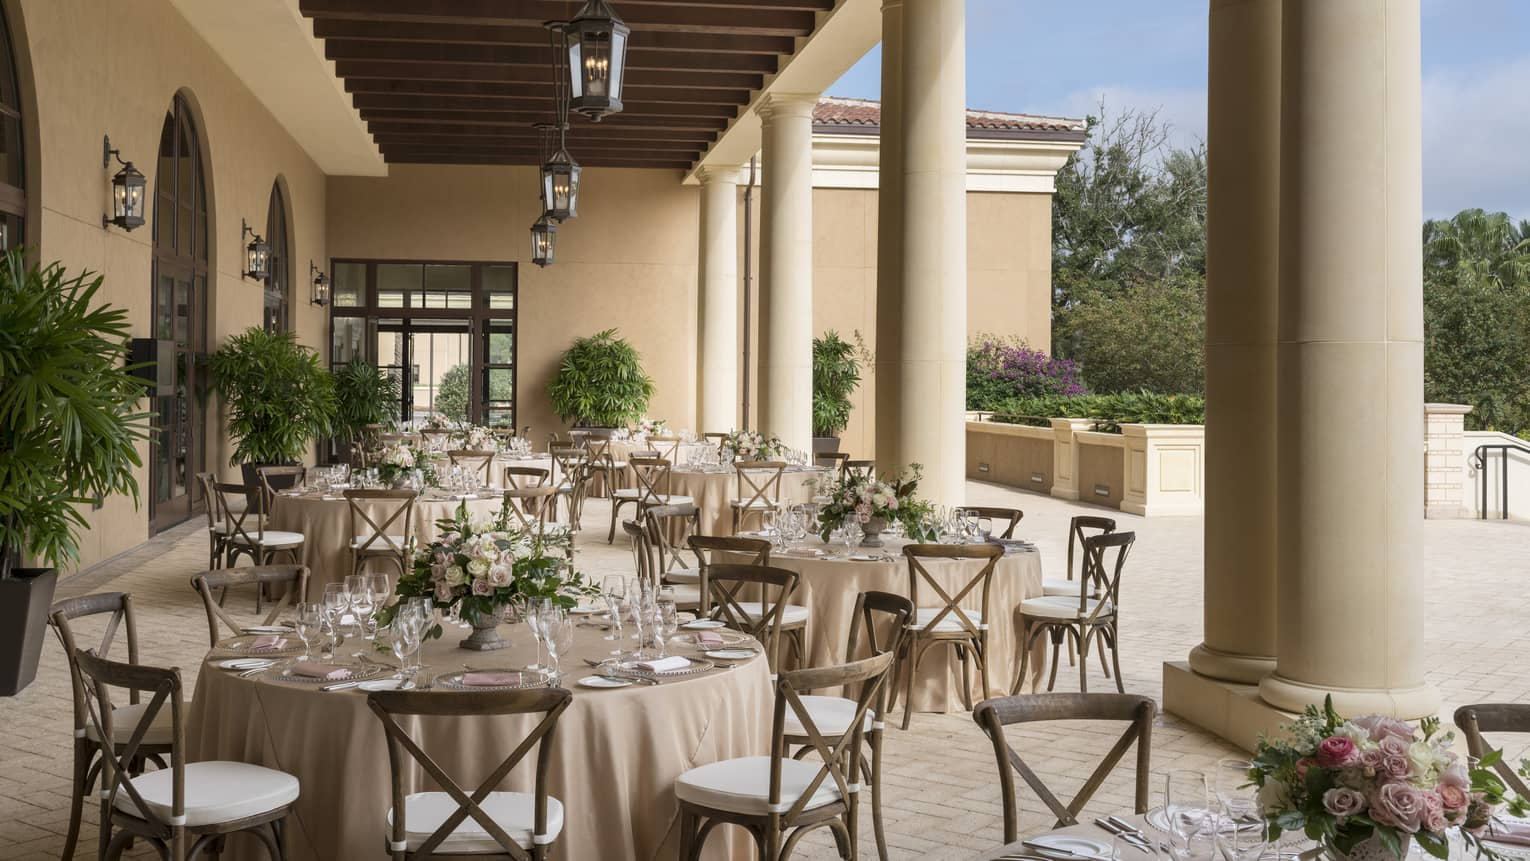 The Grand Ballroom Terrace is ready for guests with circular tables set with a cream table cloth, clear glass plates and tableware and a green floral arrangement in the center